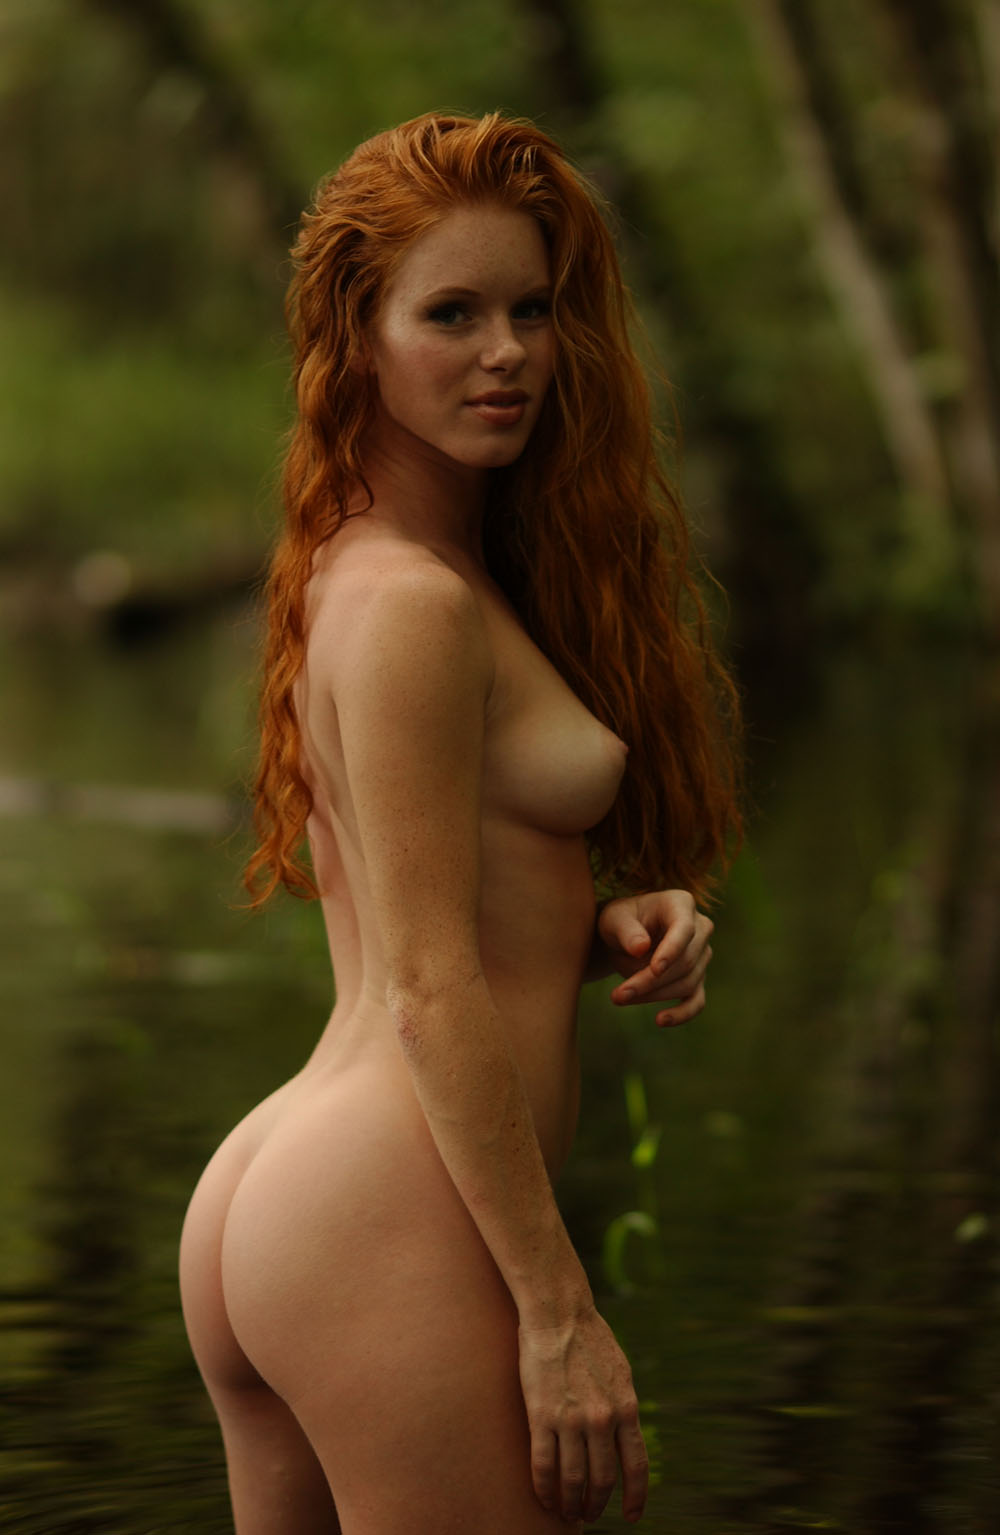 Selfie naked thick girls redheads boring